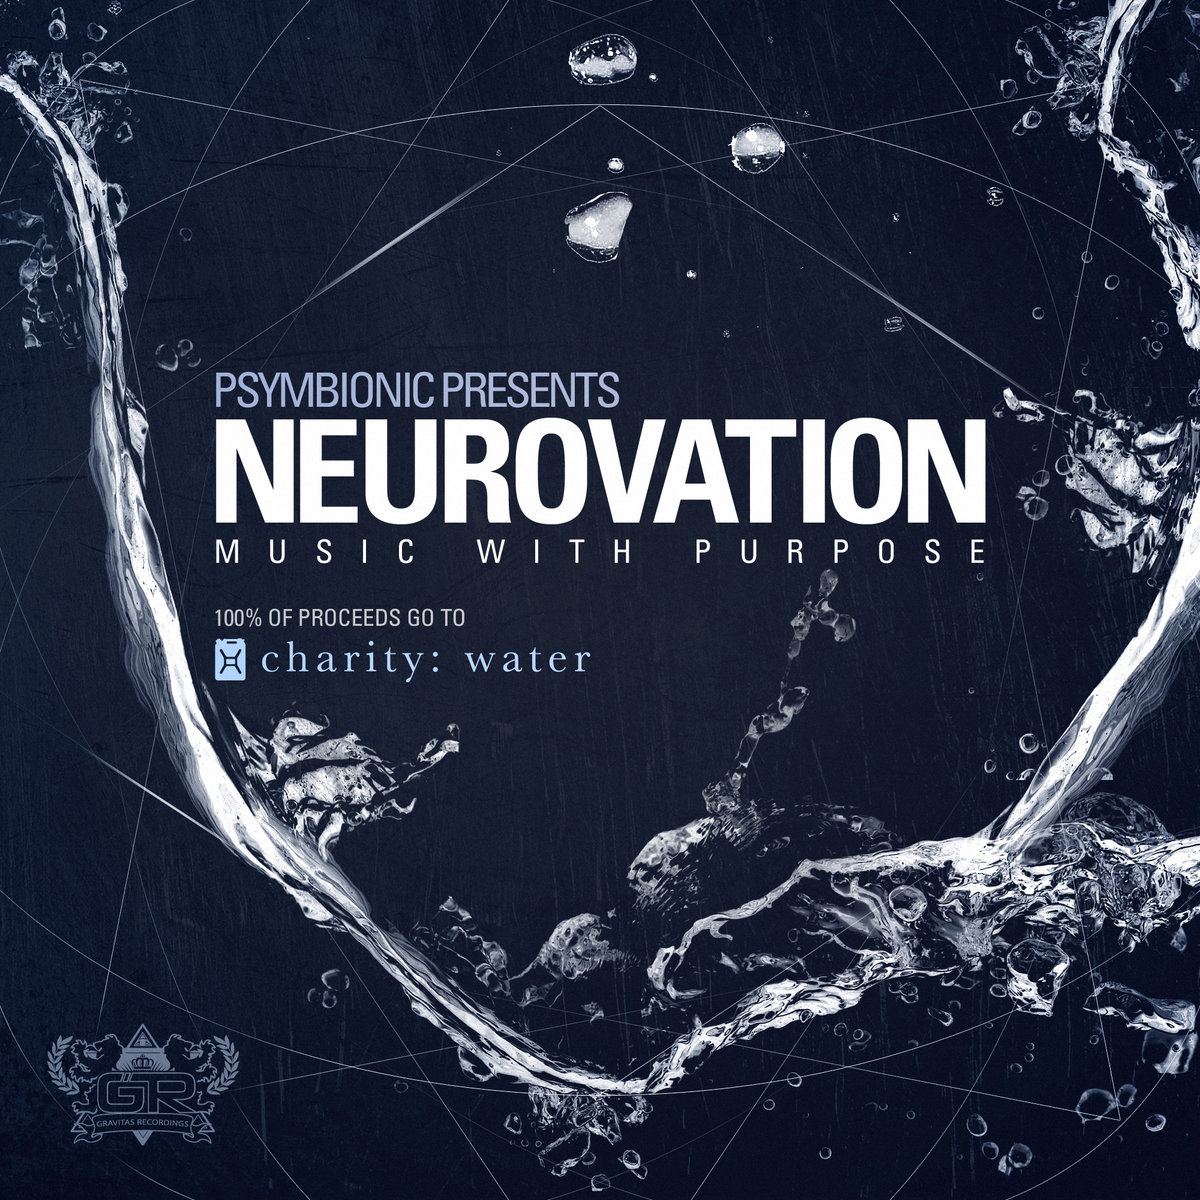 Knight Riderz - Love is Blind @ 'Psymbionic Presents: Neurovation' album (cryptex, glitch hop)